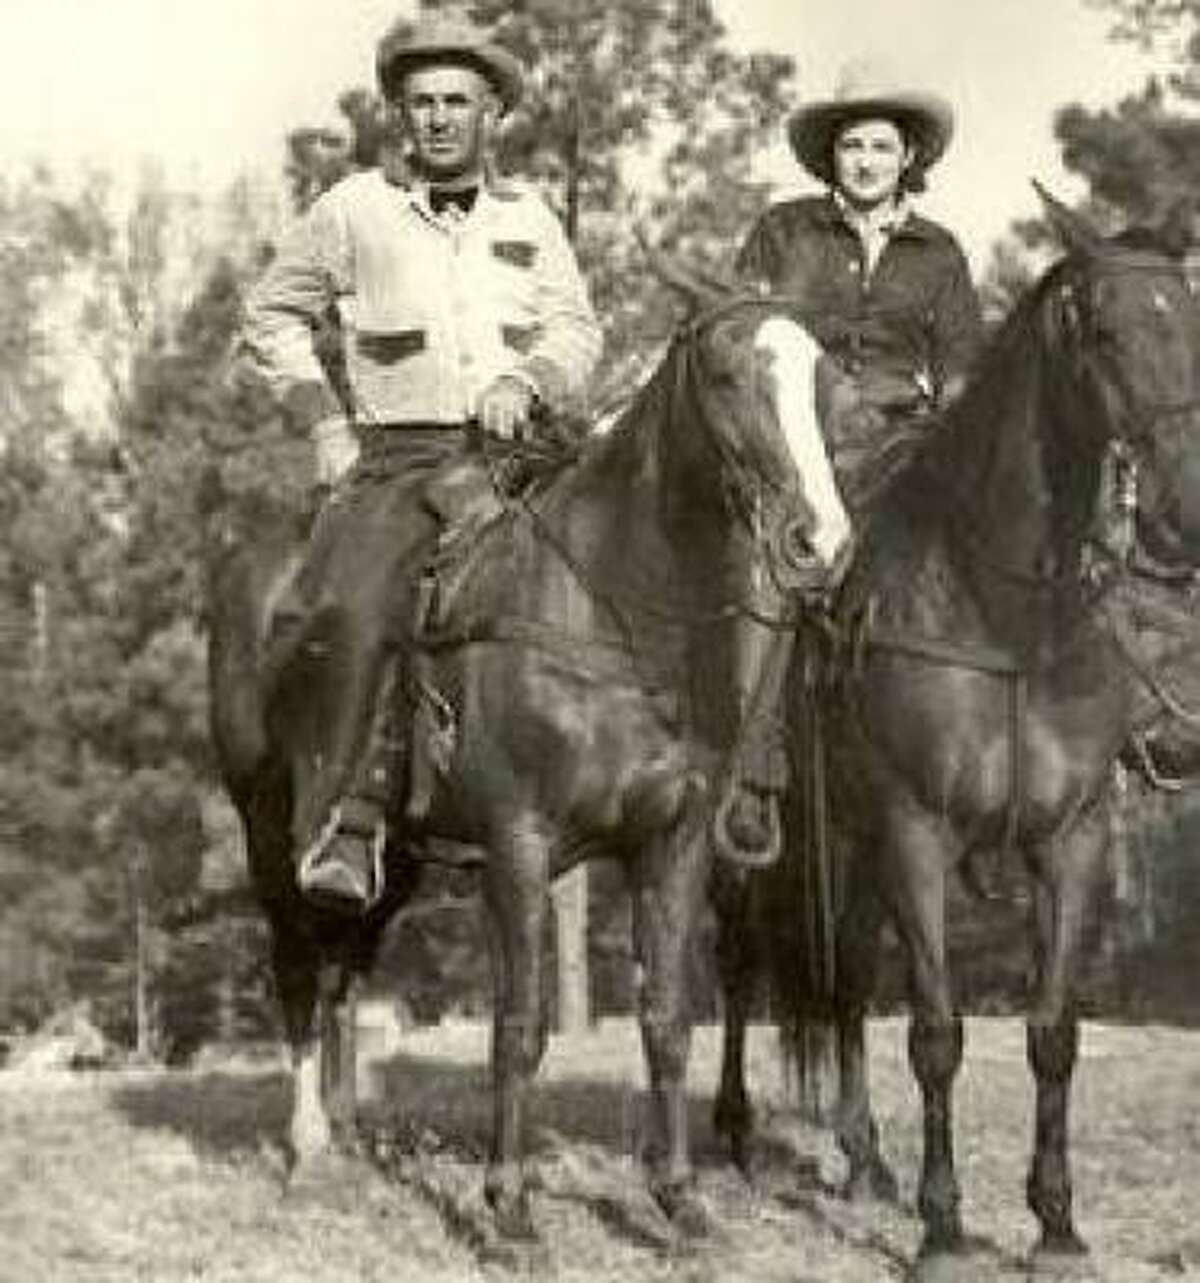 Hazel Lee Turner, with longtime companion Gerald Abbott, a pickup man in rodeos, began working on ranches at age 12.